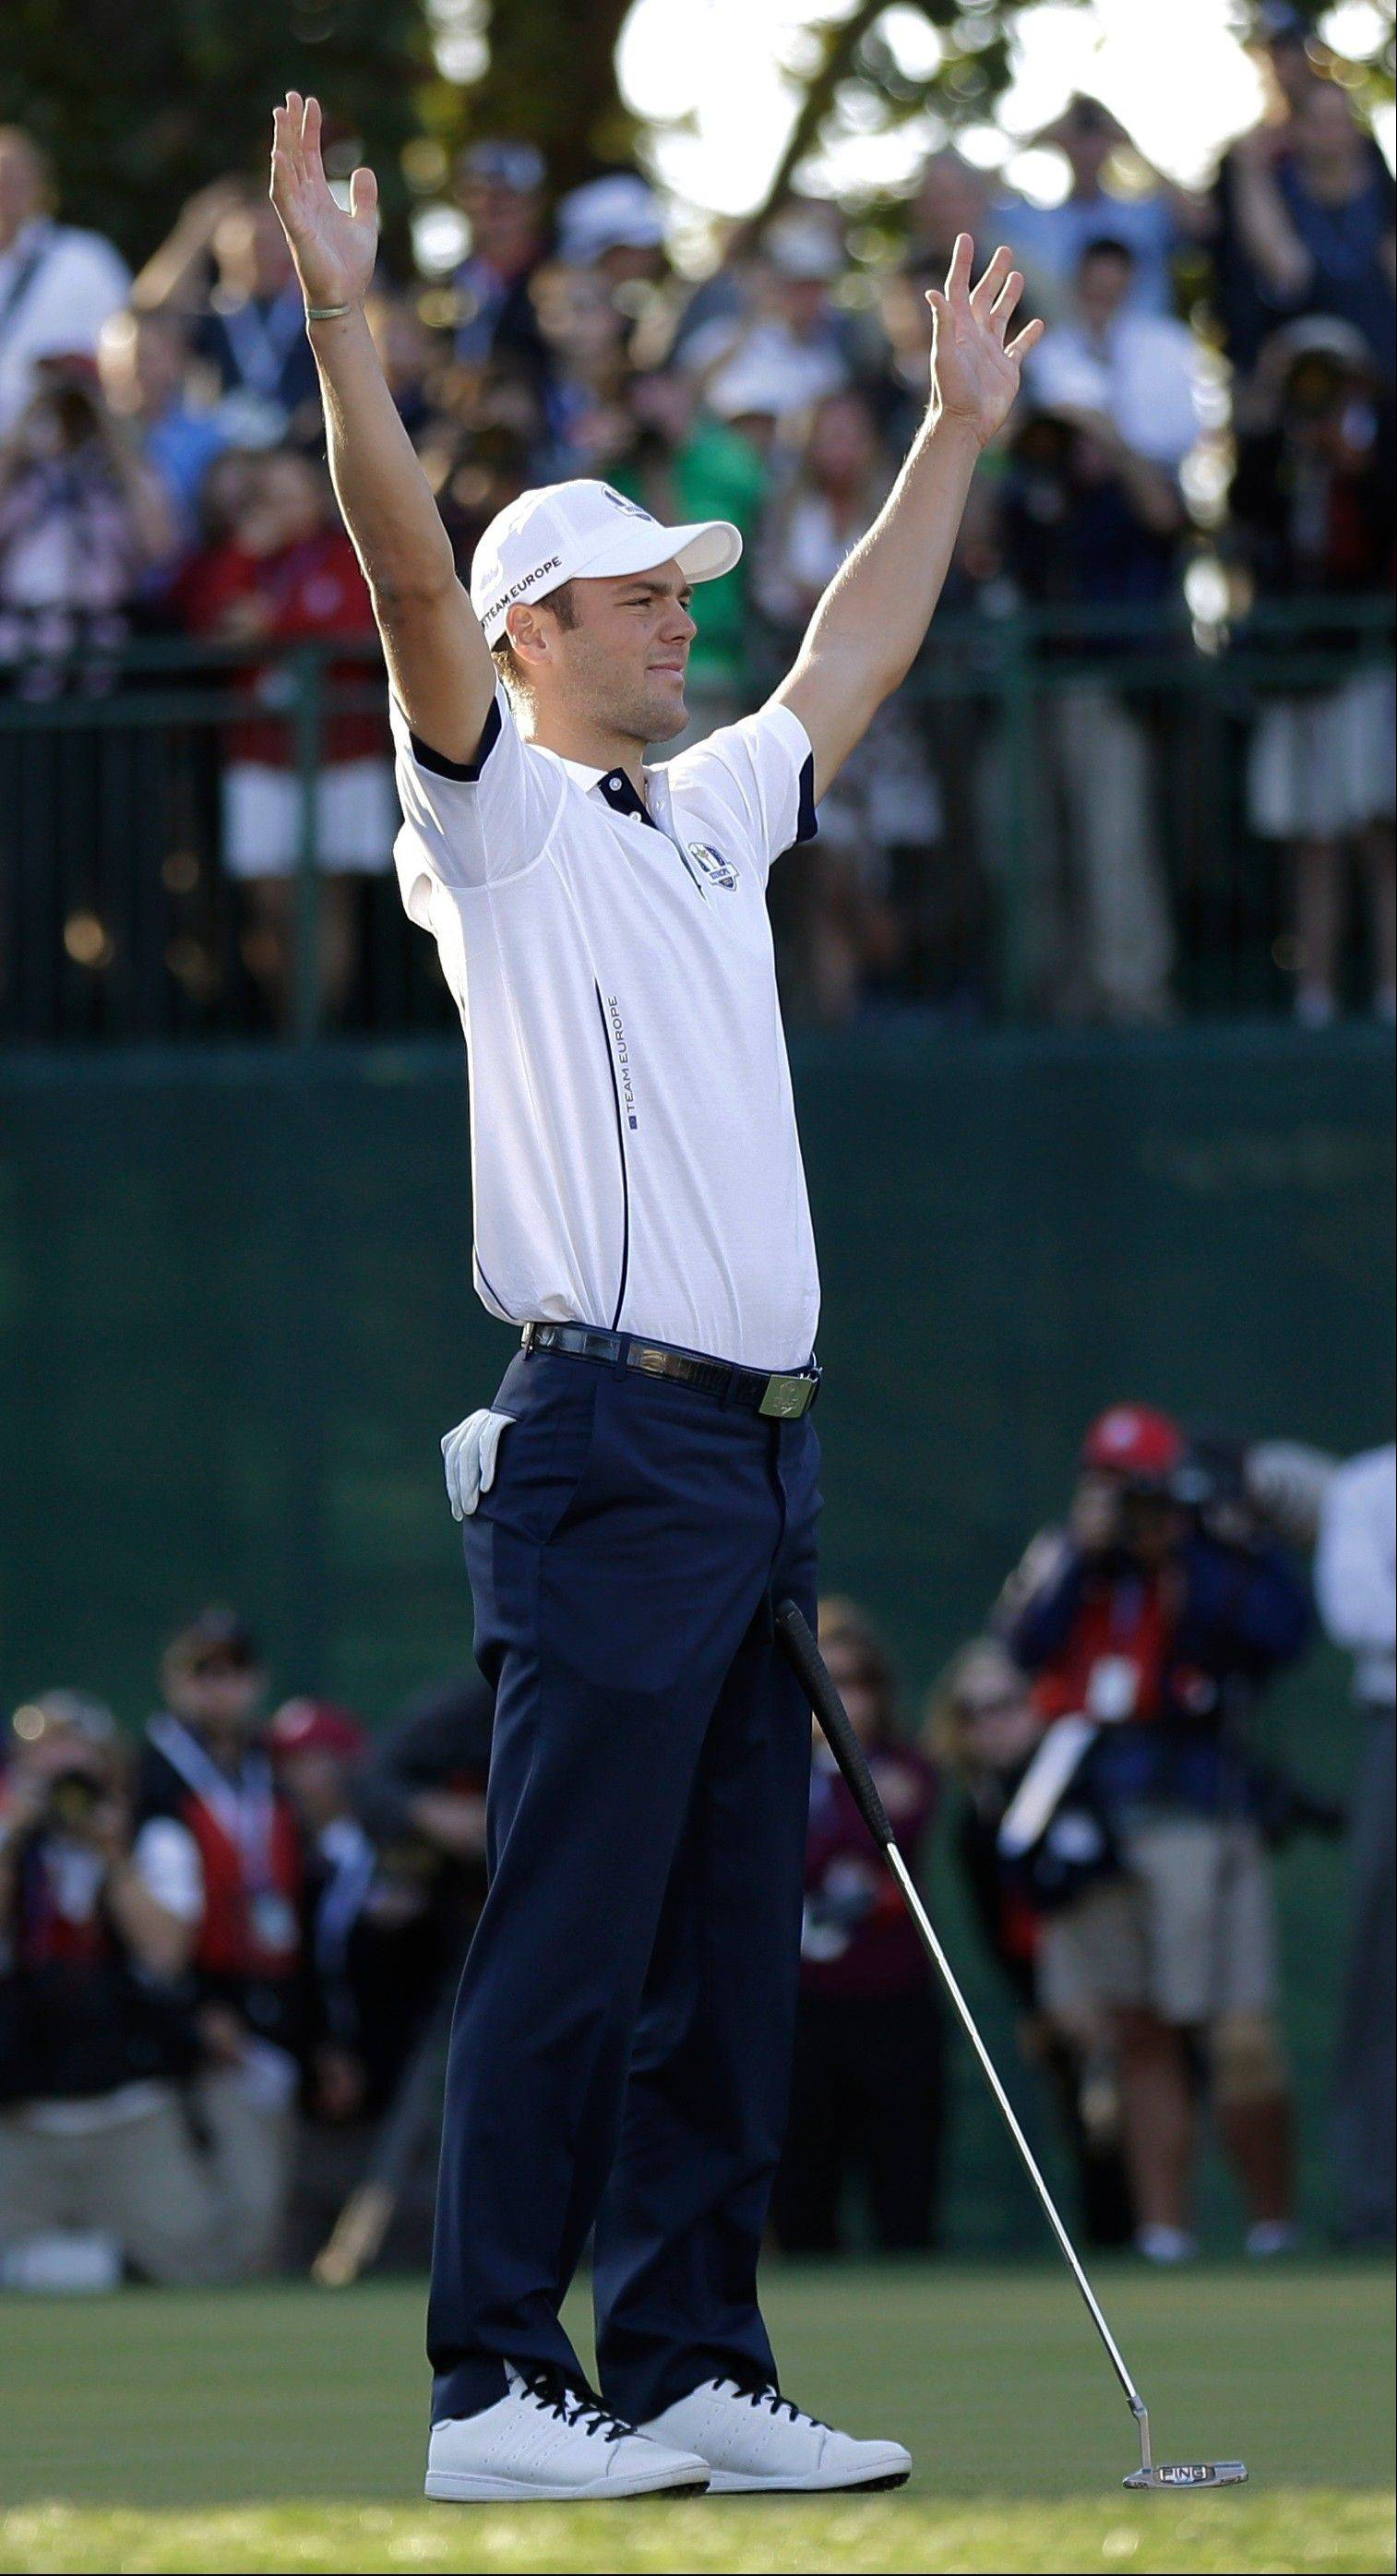 Europe's Martin Kaymer reacts after winning his match on the 18th hole to clinch a Europe win Sunday at the Ryder Cup.